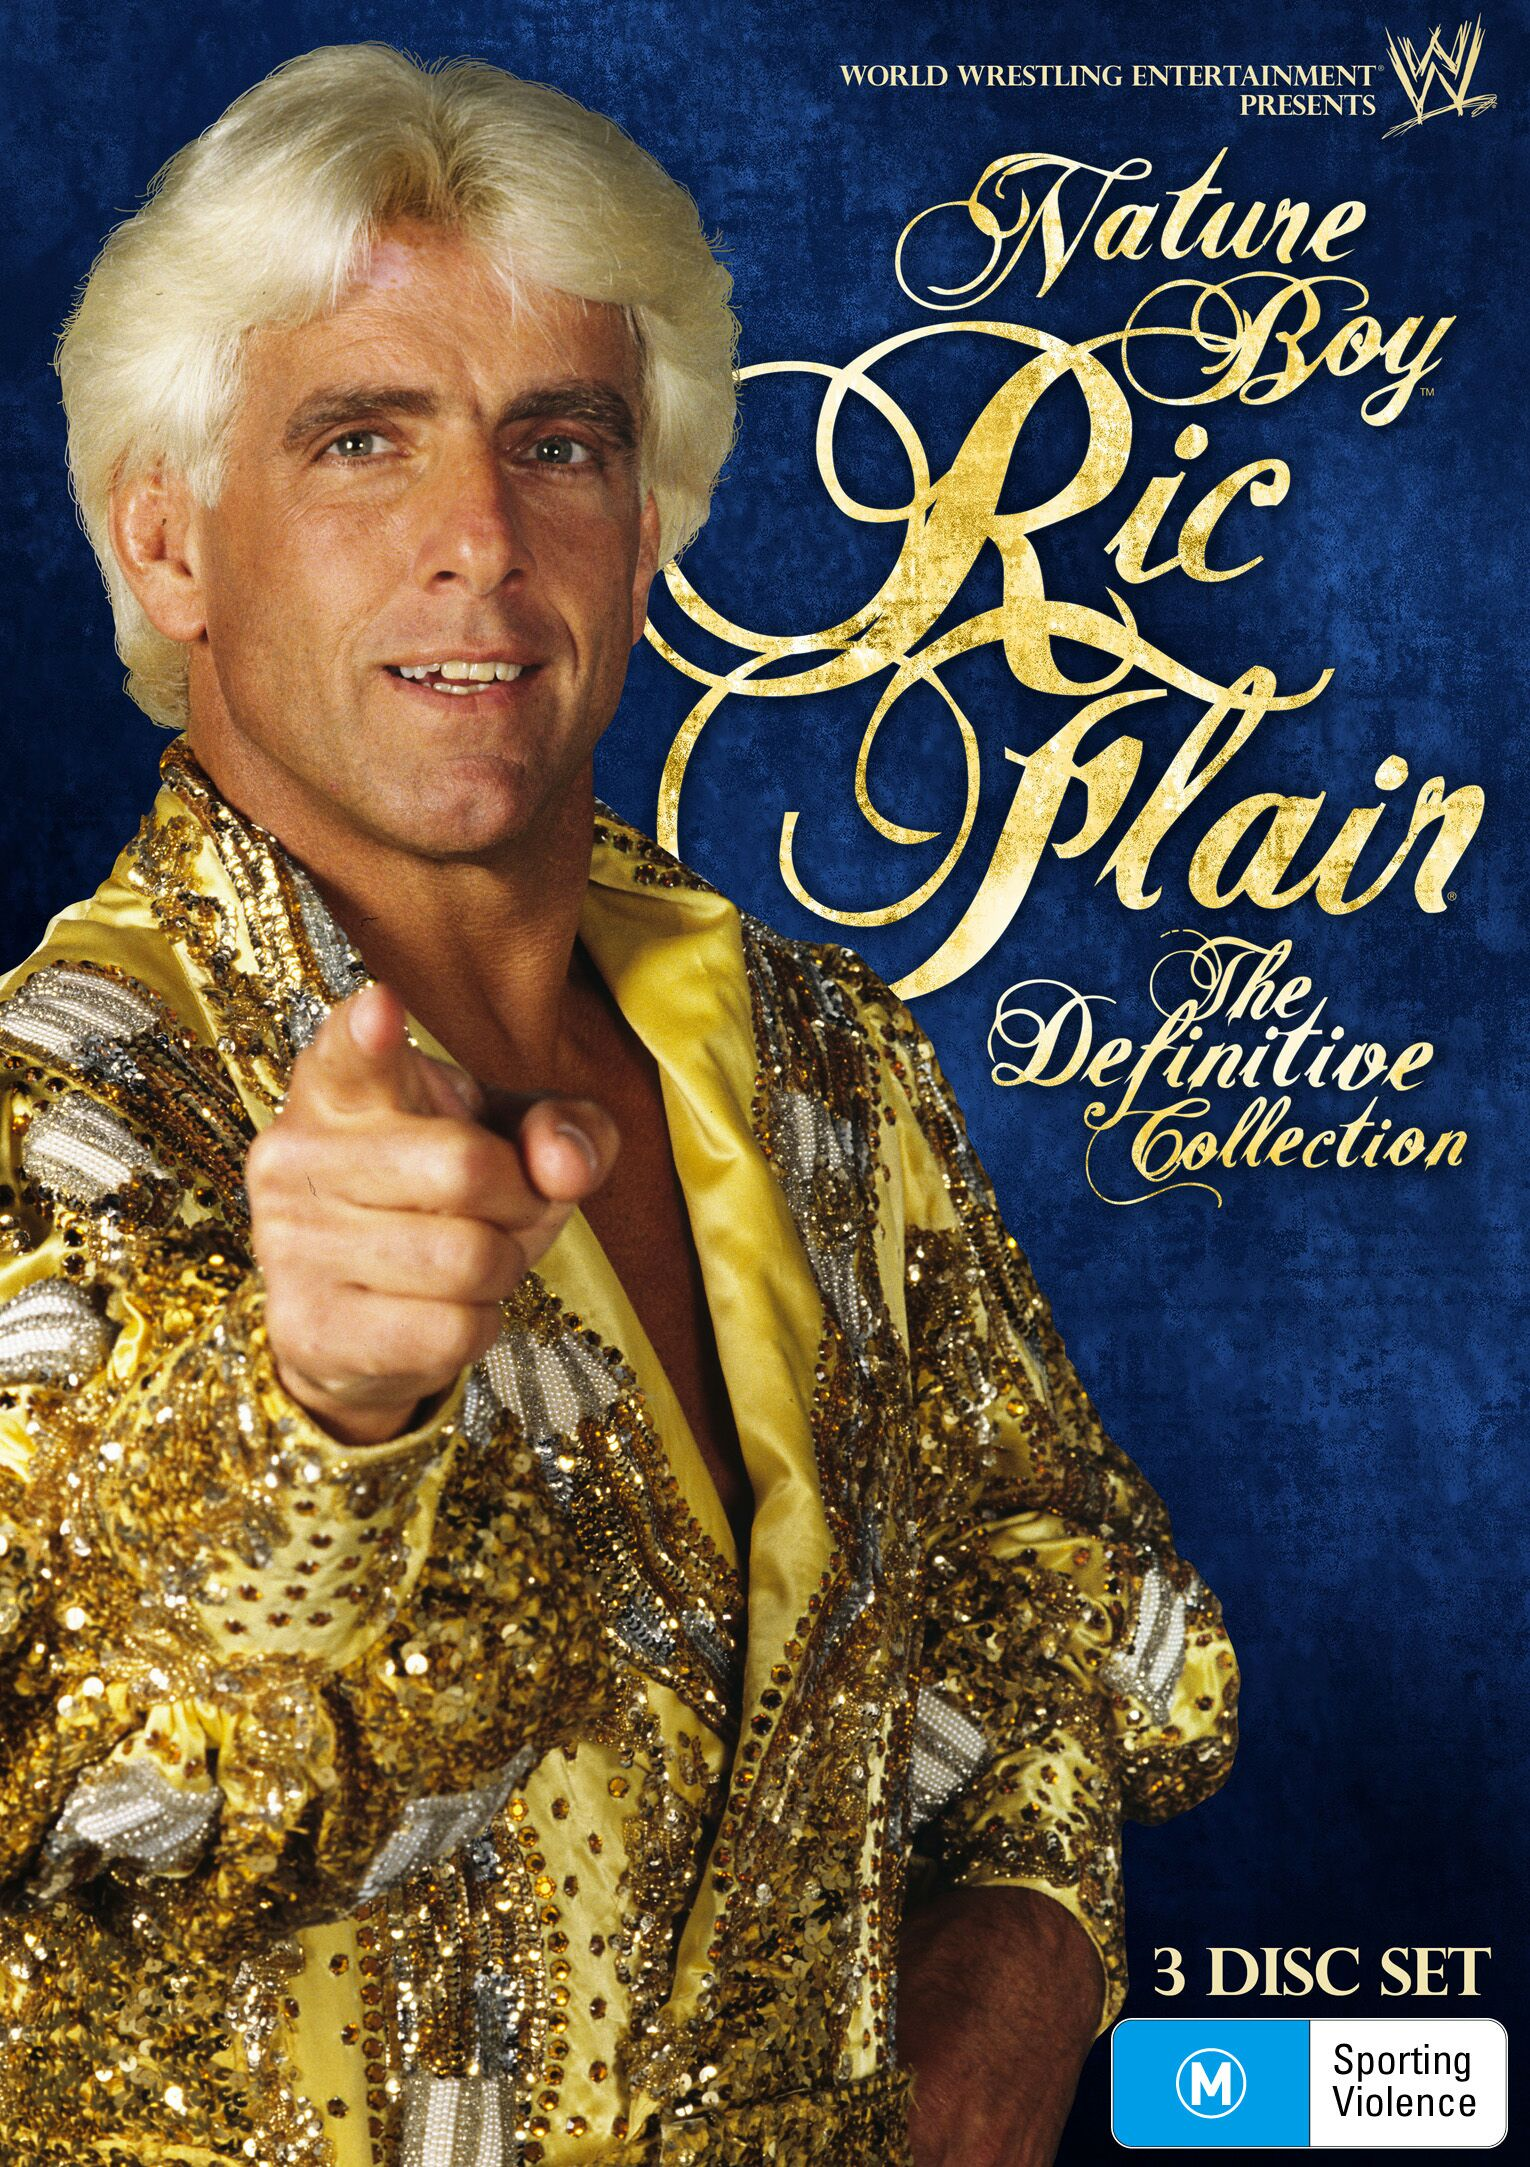 Ric Flair in Nature Boy Ric Flair: The Definitive Collection (2008)